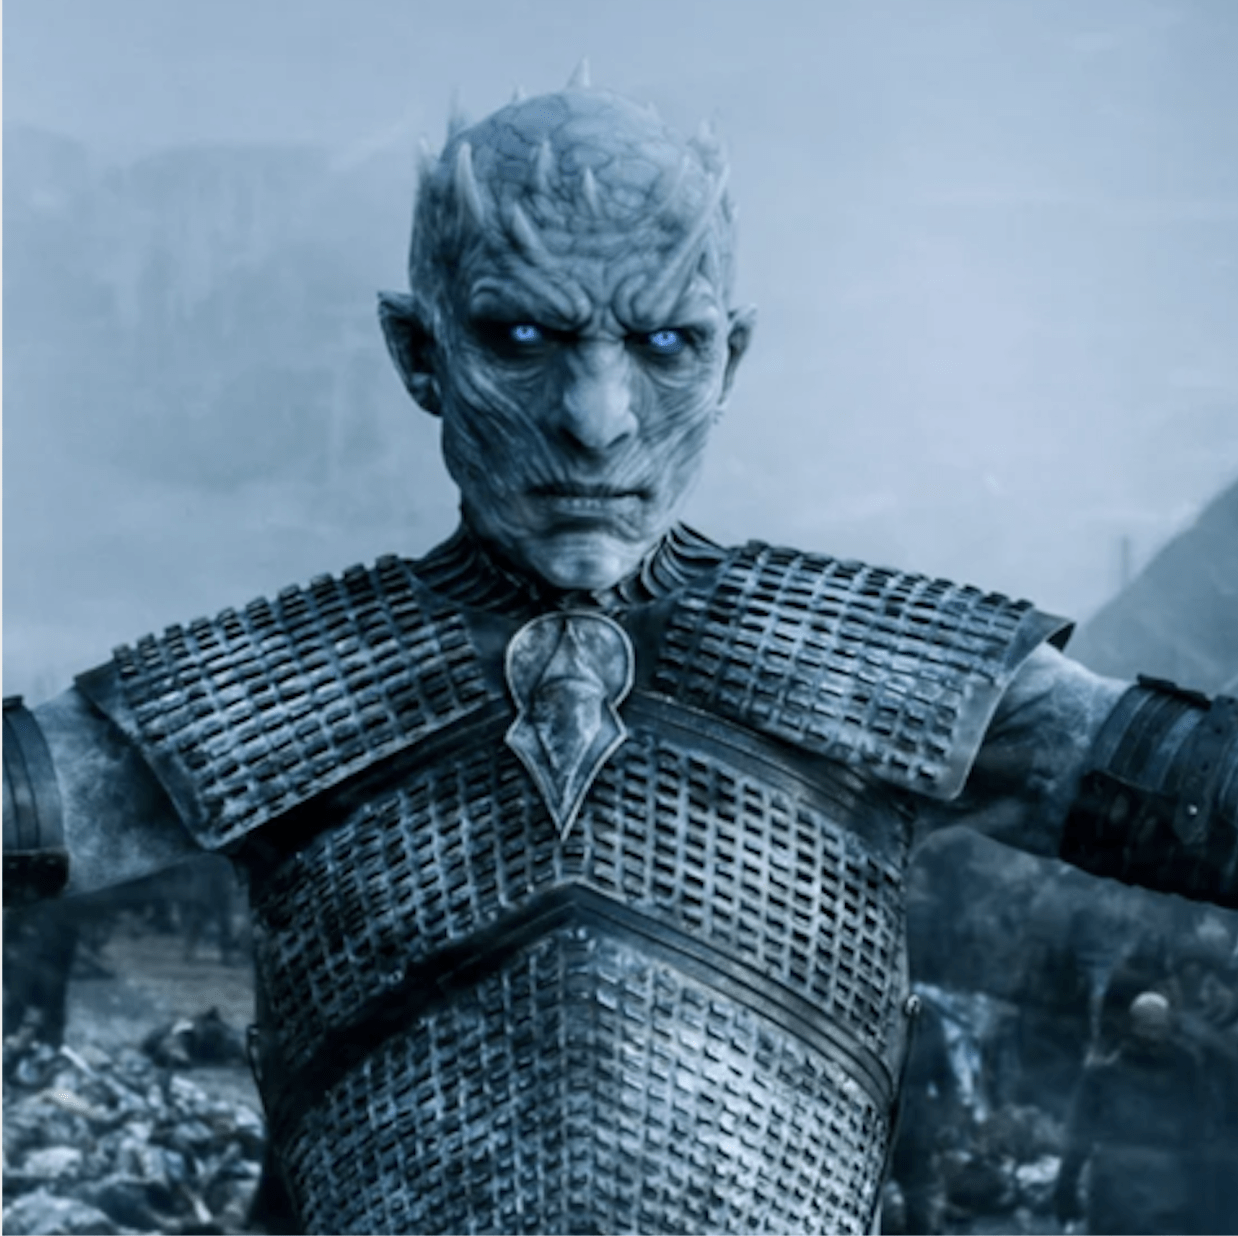 33 Night King From Game Of Thrones By Scepterdpinoy On: Recap & Thoughts On Game Of Thrones Season 8 Episode 3